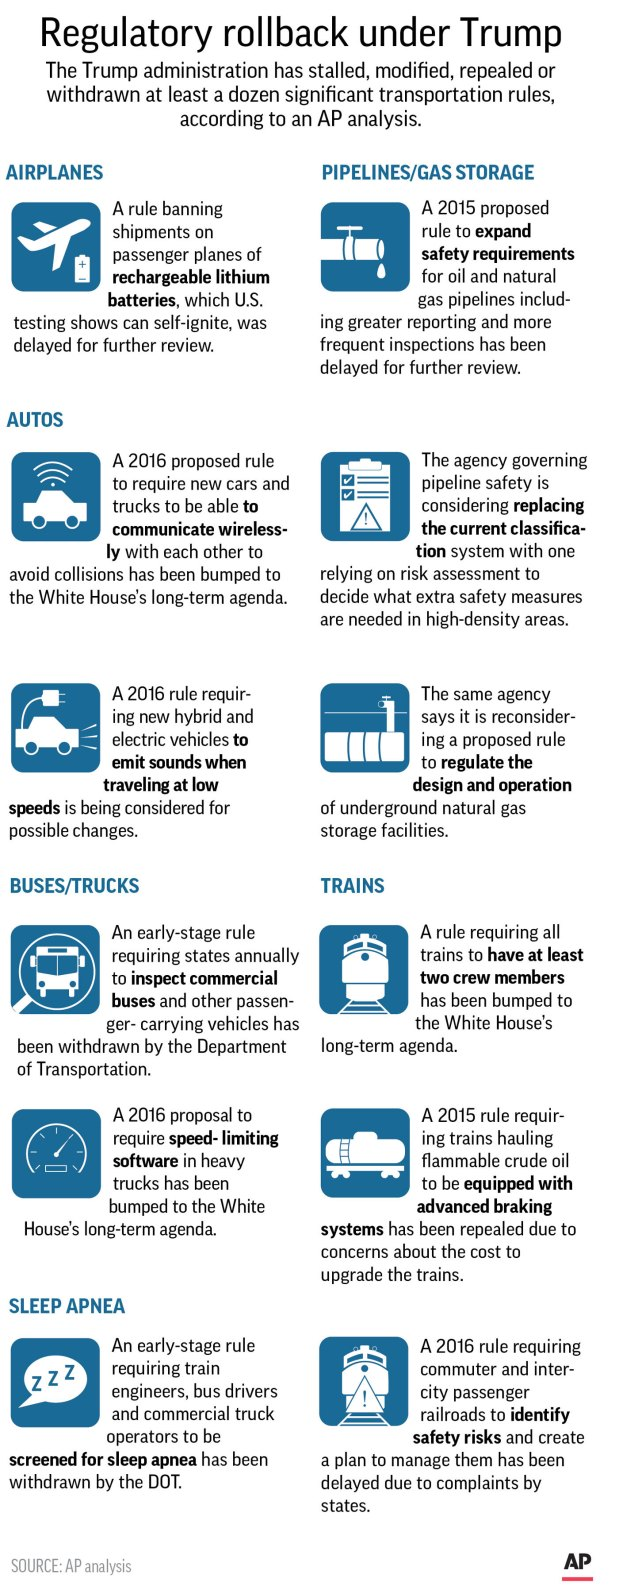 Graphic outlines some of the transportation rules rolled back or delayed by the Trump administration.